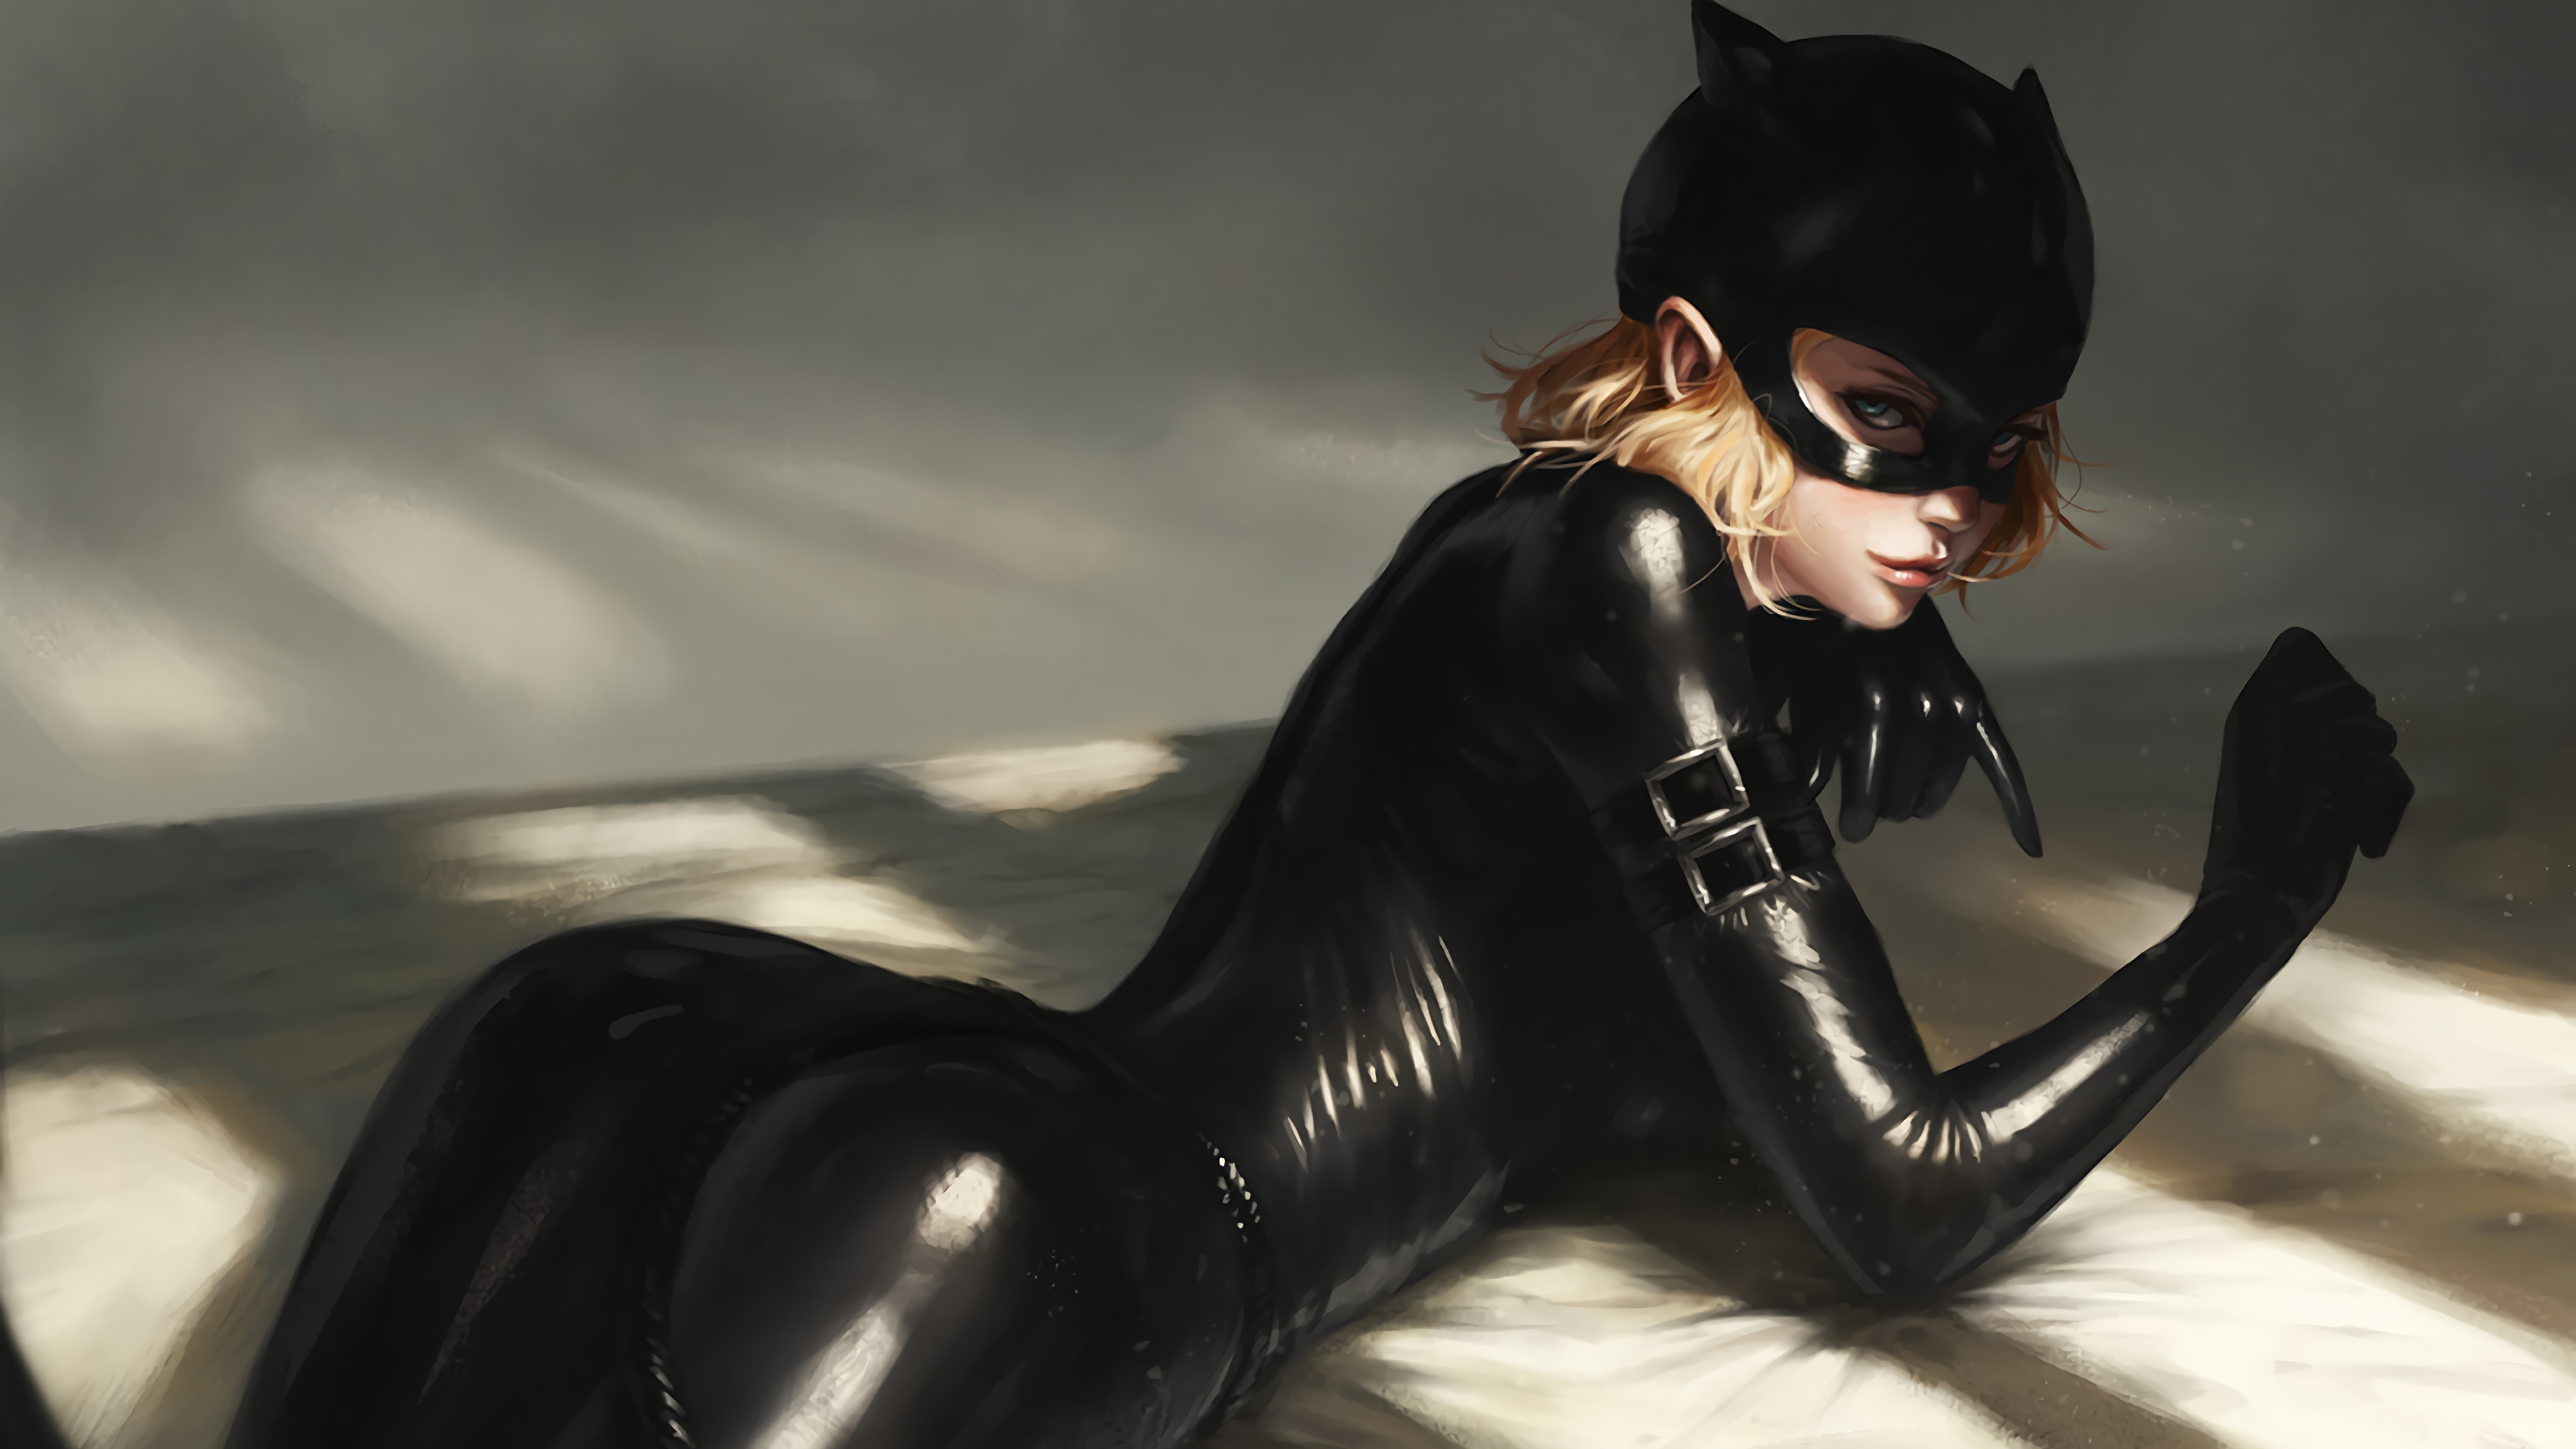 cat woman dc 1570394695 - Cat Woman Dc - superheroes wallpapers, hd-wallpapers, digital art wallpapers, catwoman wallpapers, artwork wallpapers, 4k-wallpapers